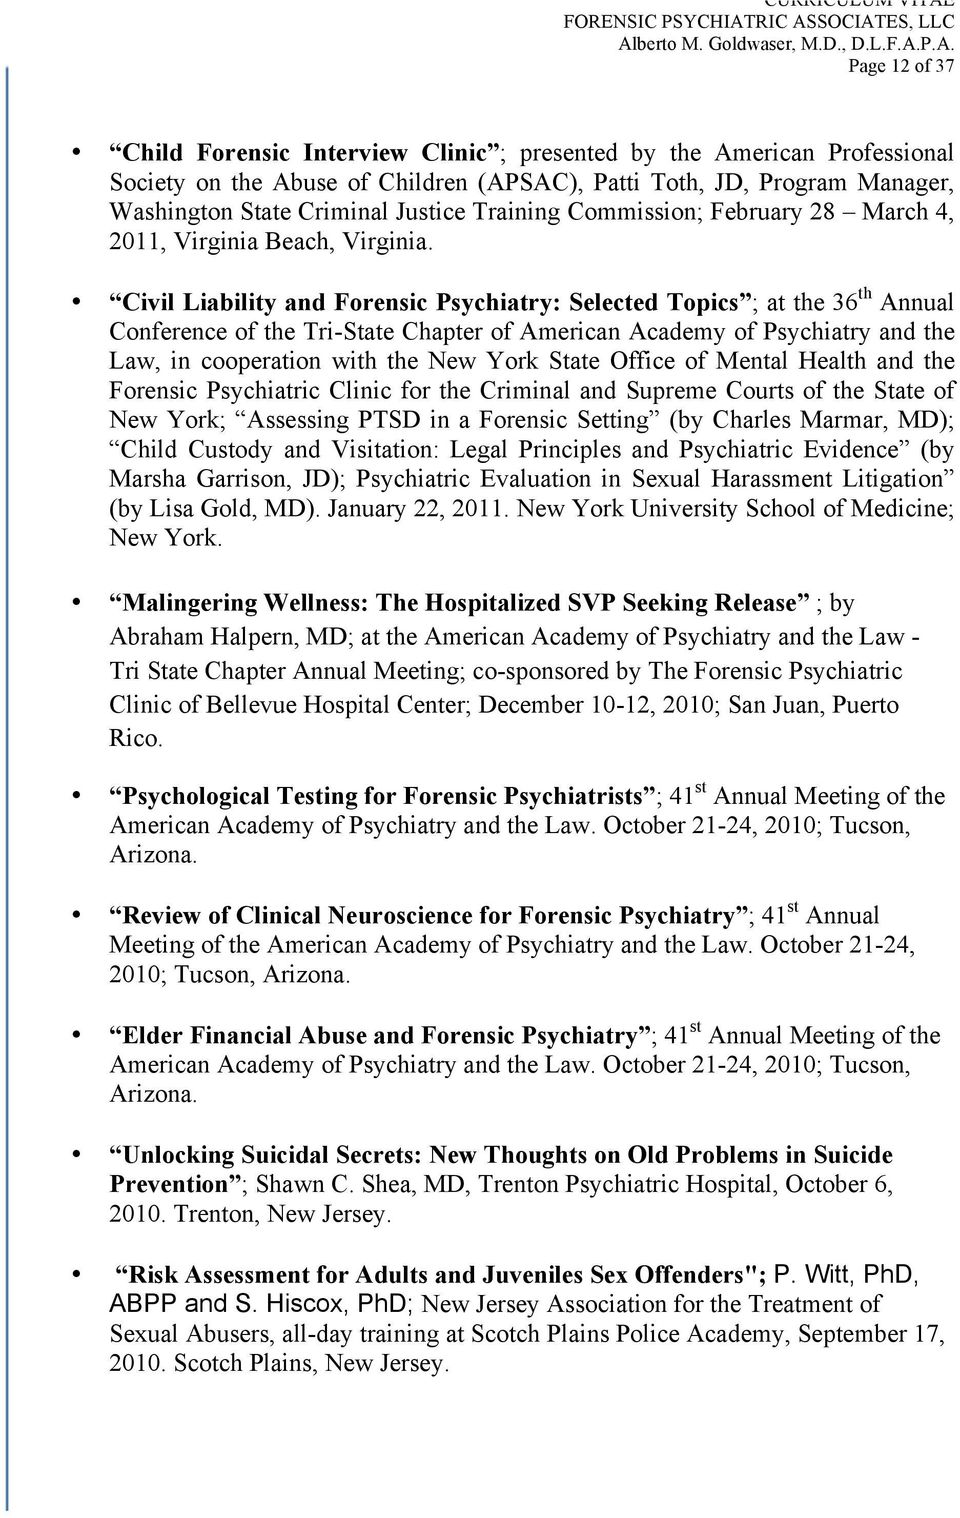 Civil Liability and Forensic Psychiatry: Selected Topics ; at the 36 th Annual Conference of the Tri-State Chapter of American Academy of Psychiatry and the Law, in cooperation with the New York